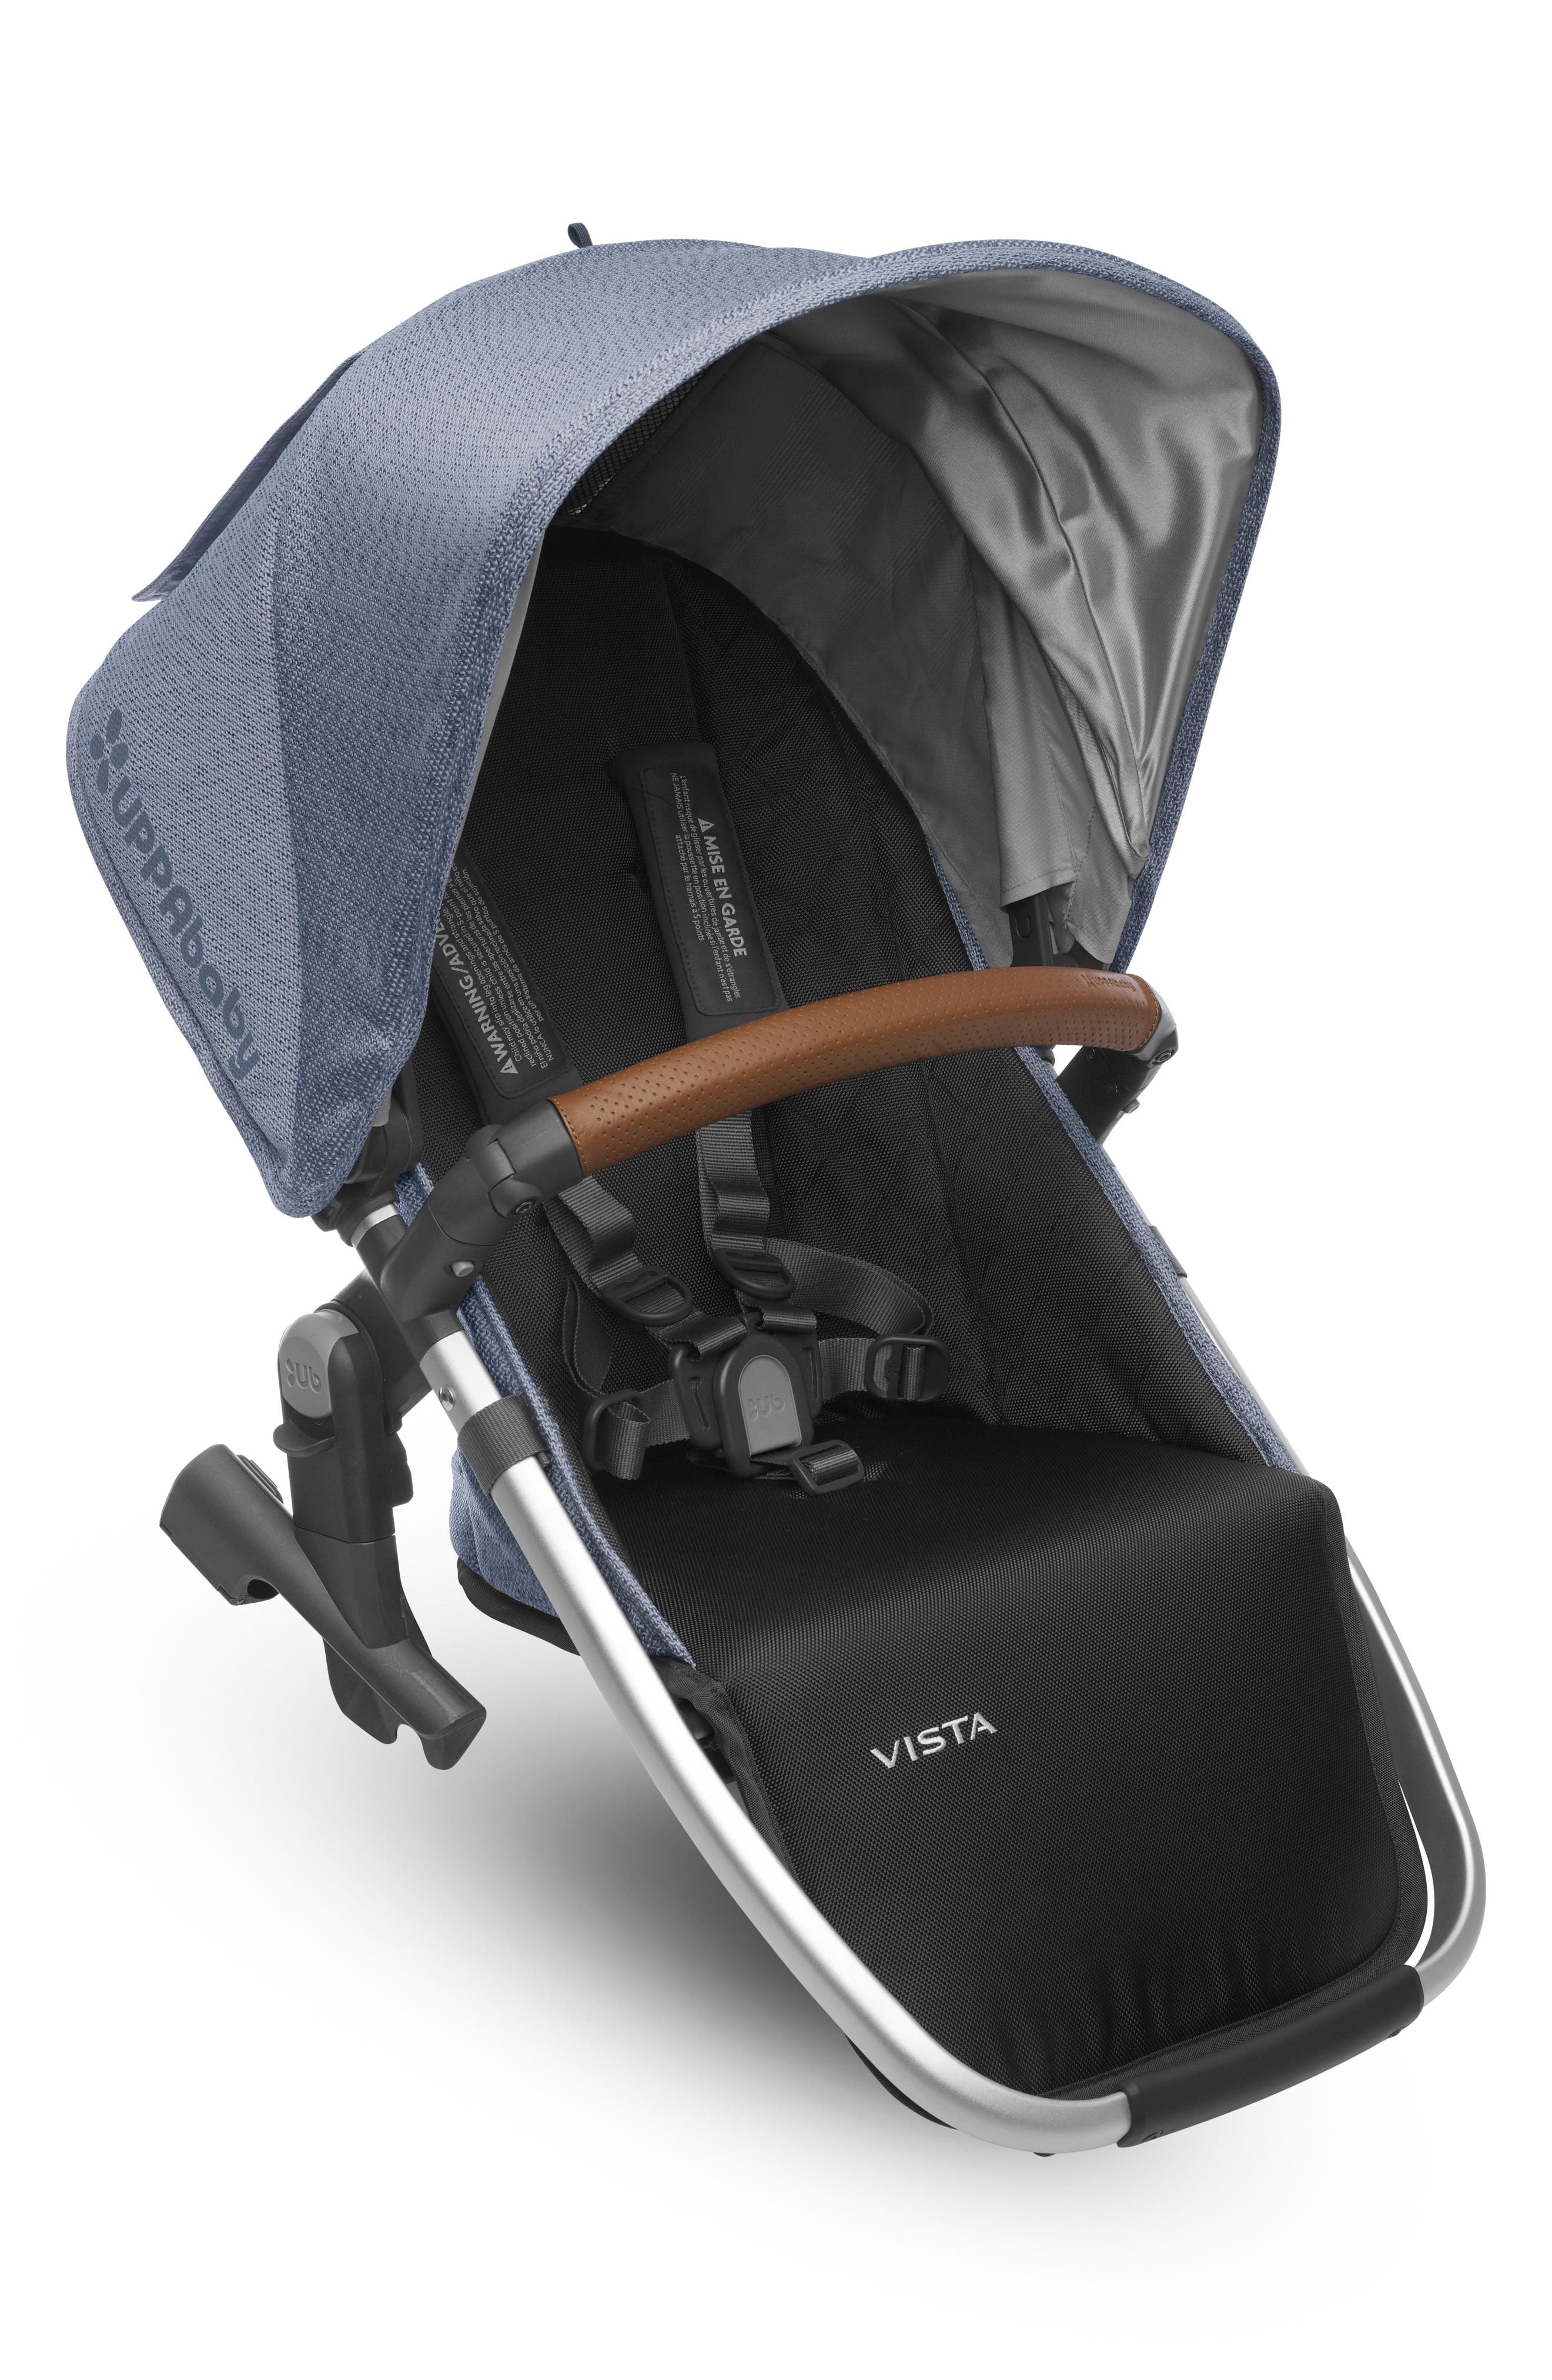 2017 Limited Edition Henry Rumble Seat for VISTA Stroller,                             Main thumbnail 1, color,                             411